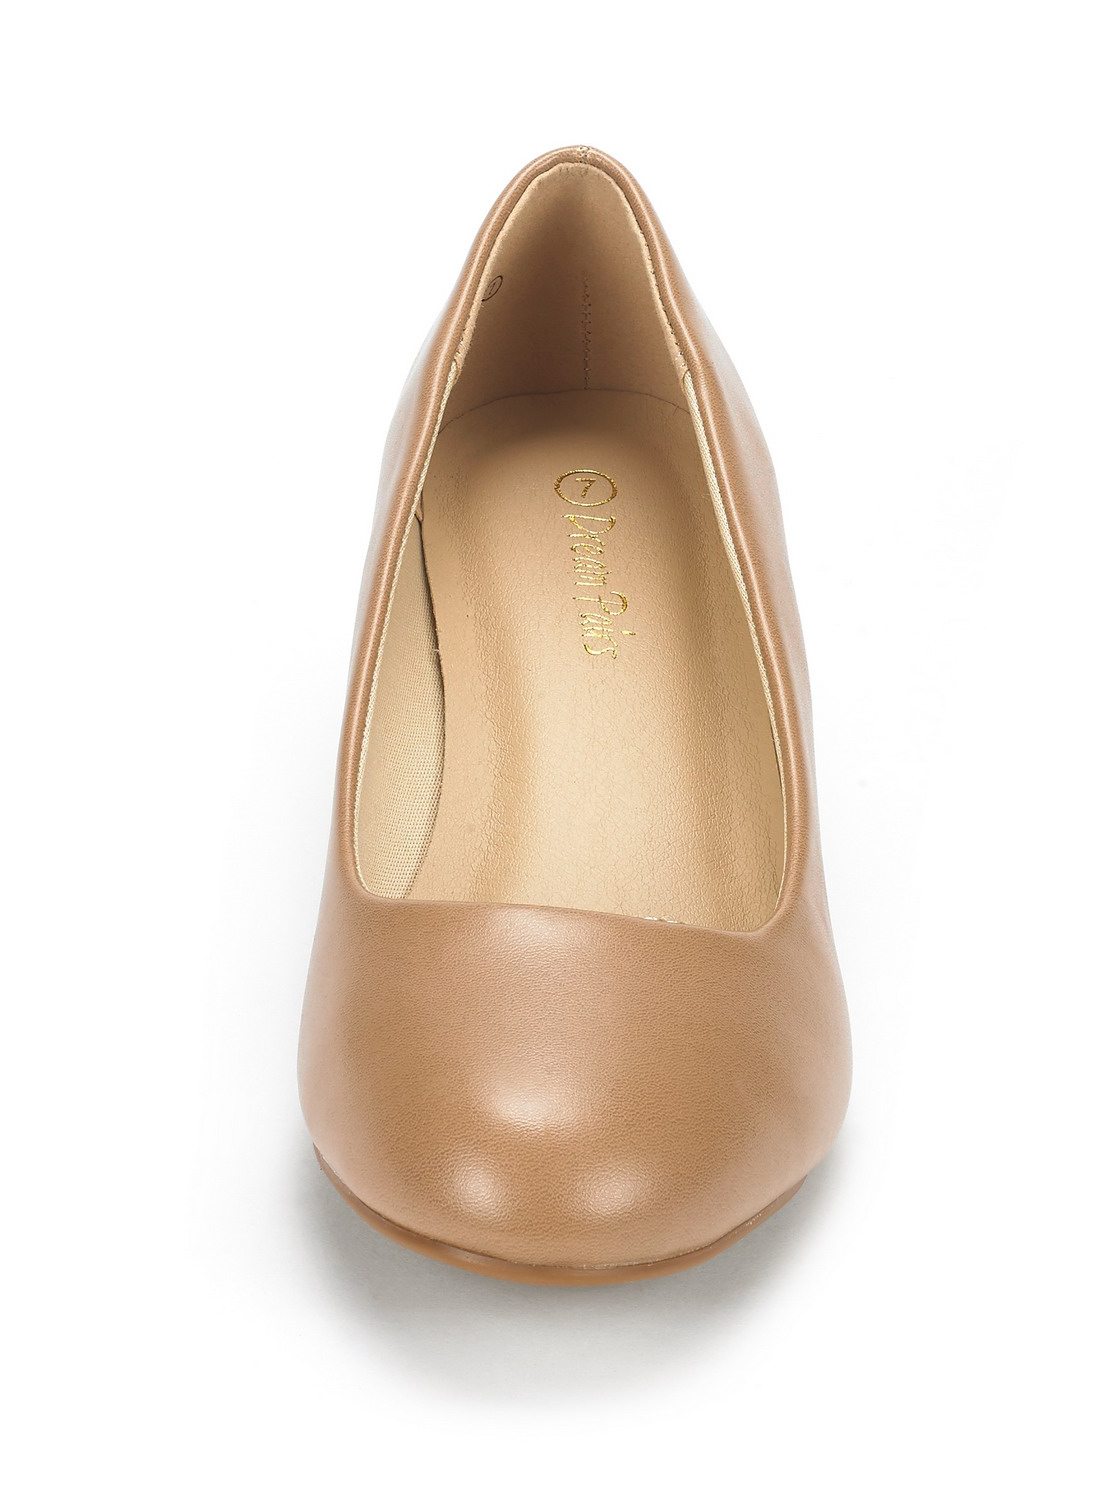 DREAM-PAIRS-Women-039-s-Mid-Wedge-Heel-Shoes-Slip-On-Comfort-Dress-Shoes-Suede-PU thumbnail 10